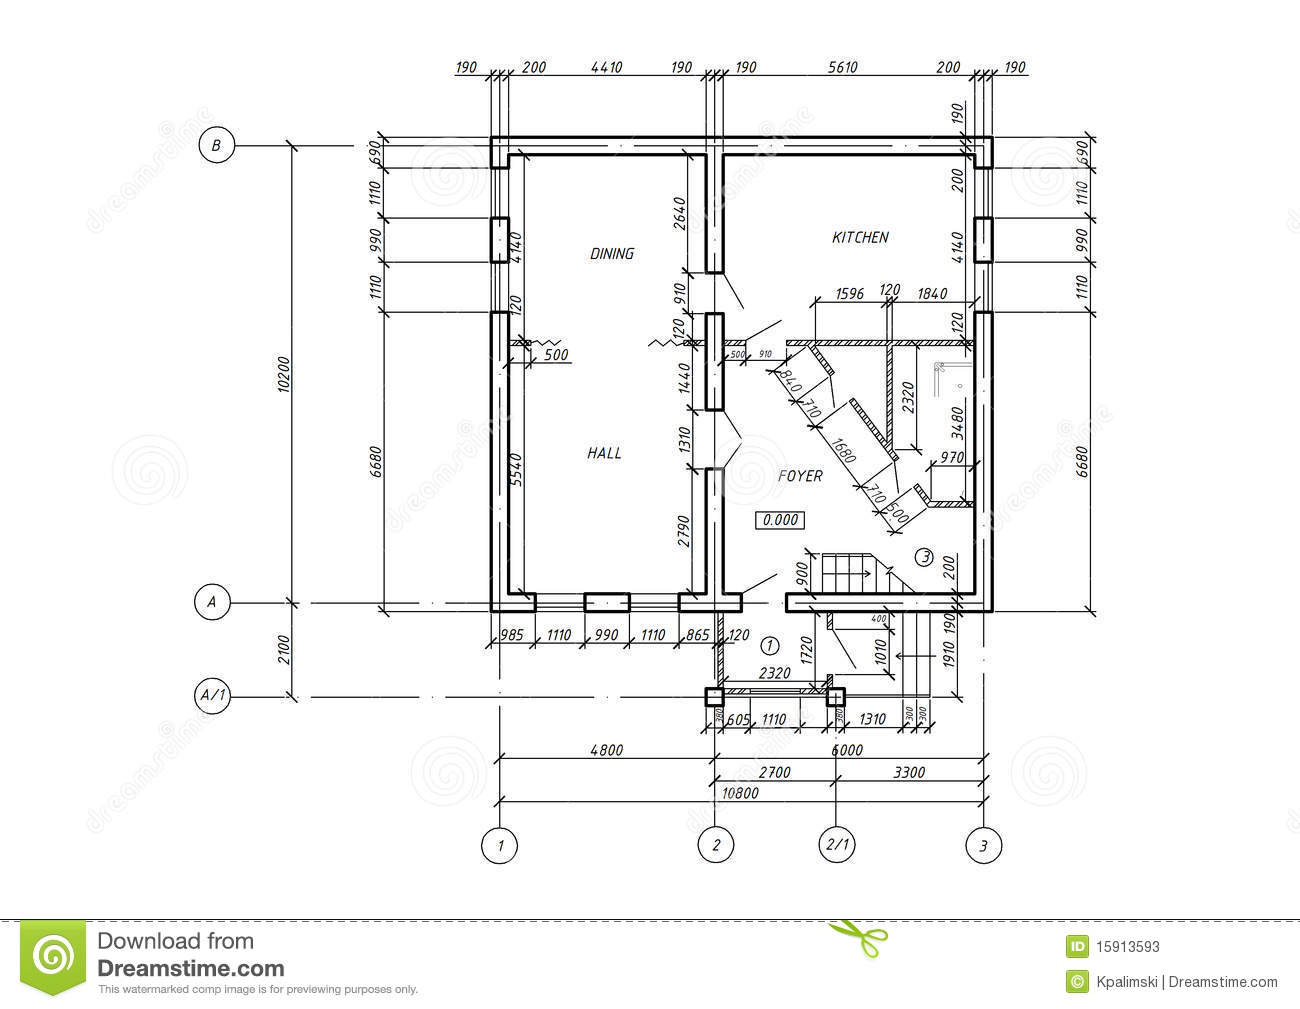 Cad architectural plan blueprint stock photos image for Architecture design blueprint